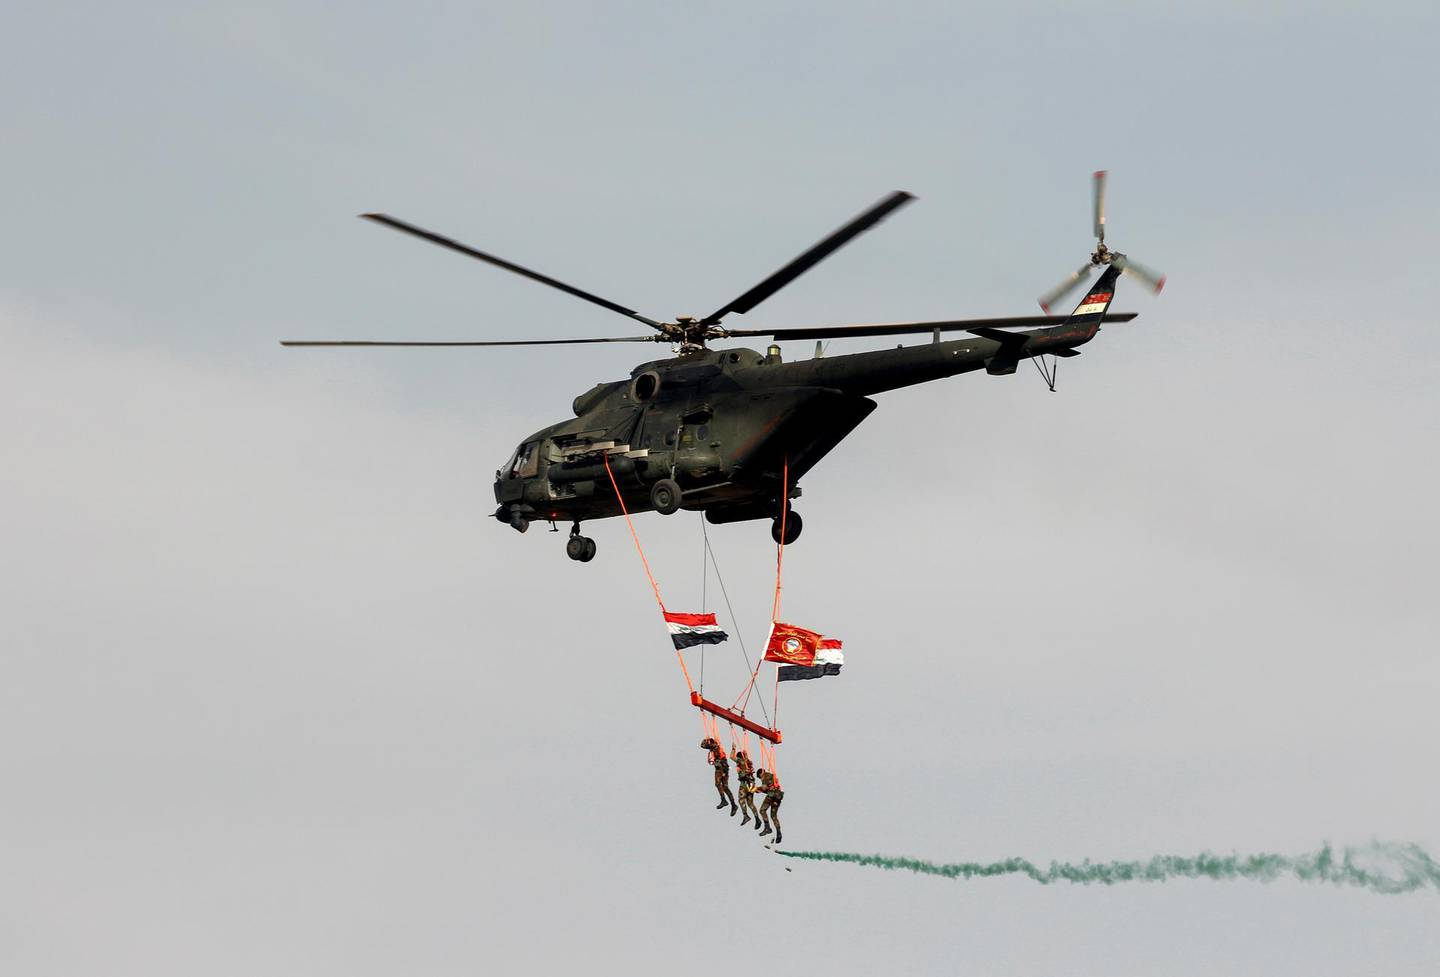 A military helicopter flies with Iraqi special forces soldiers hanging onto a rope and displaying Iraqi flags in Baghdad, Iraq April 6, 2021. REUTERS/Khalid al-Mousily